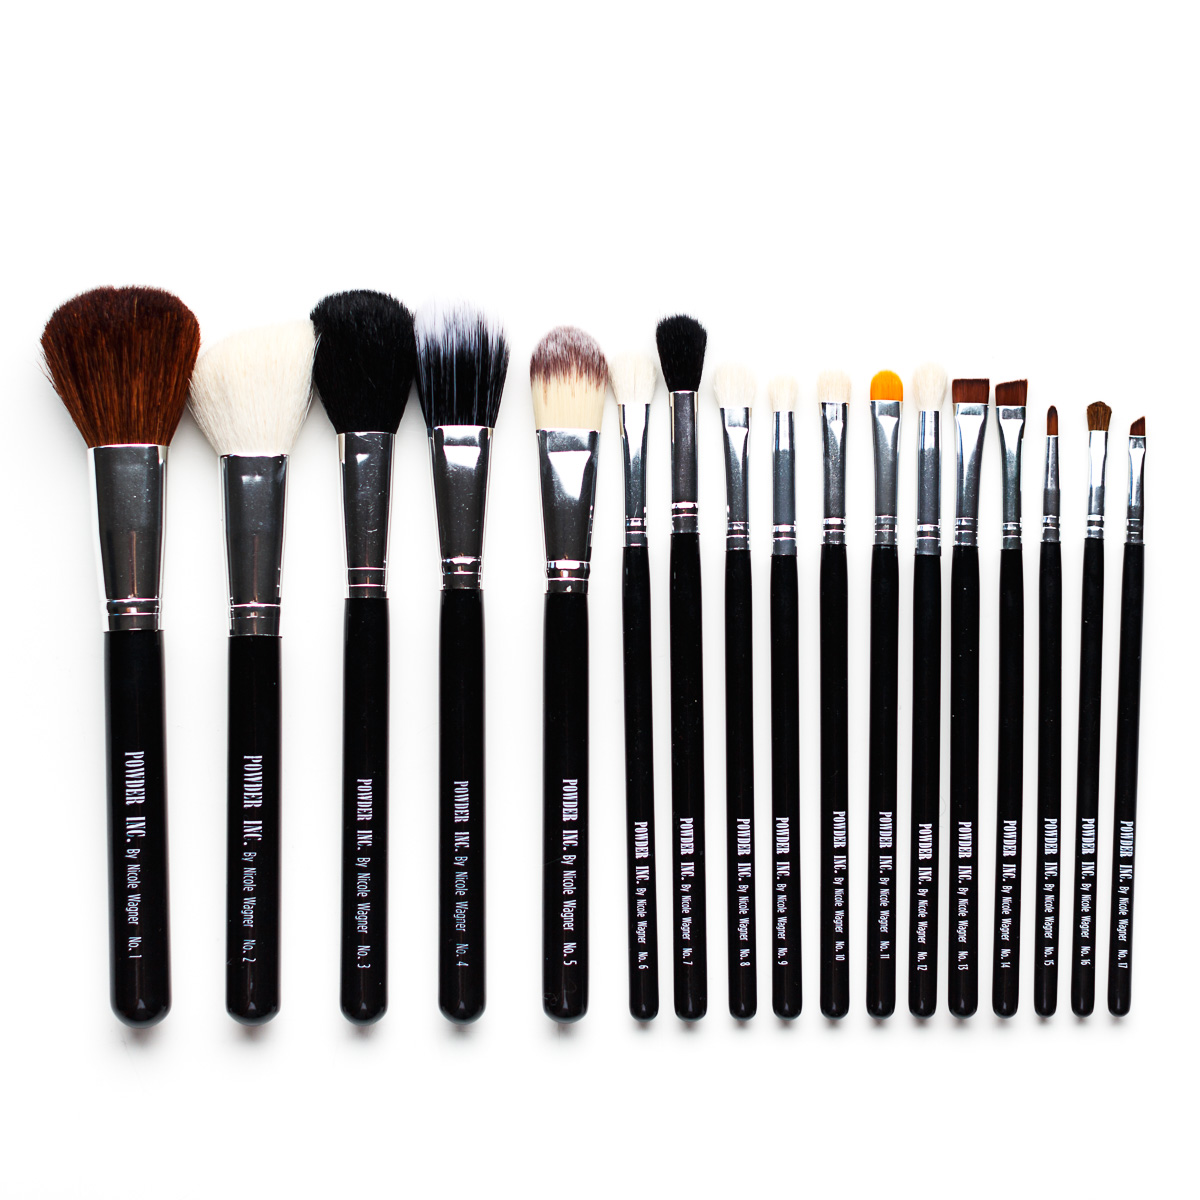 Powder Inc. 17pc brush set